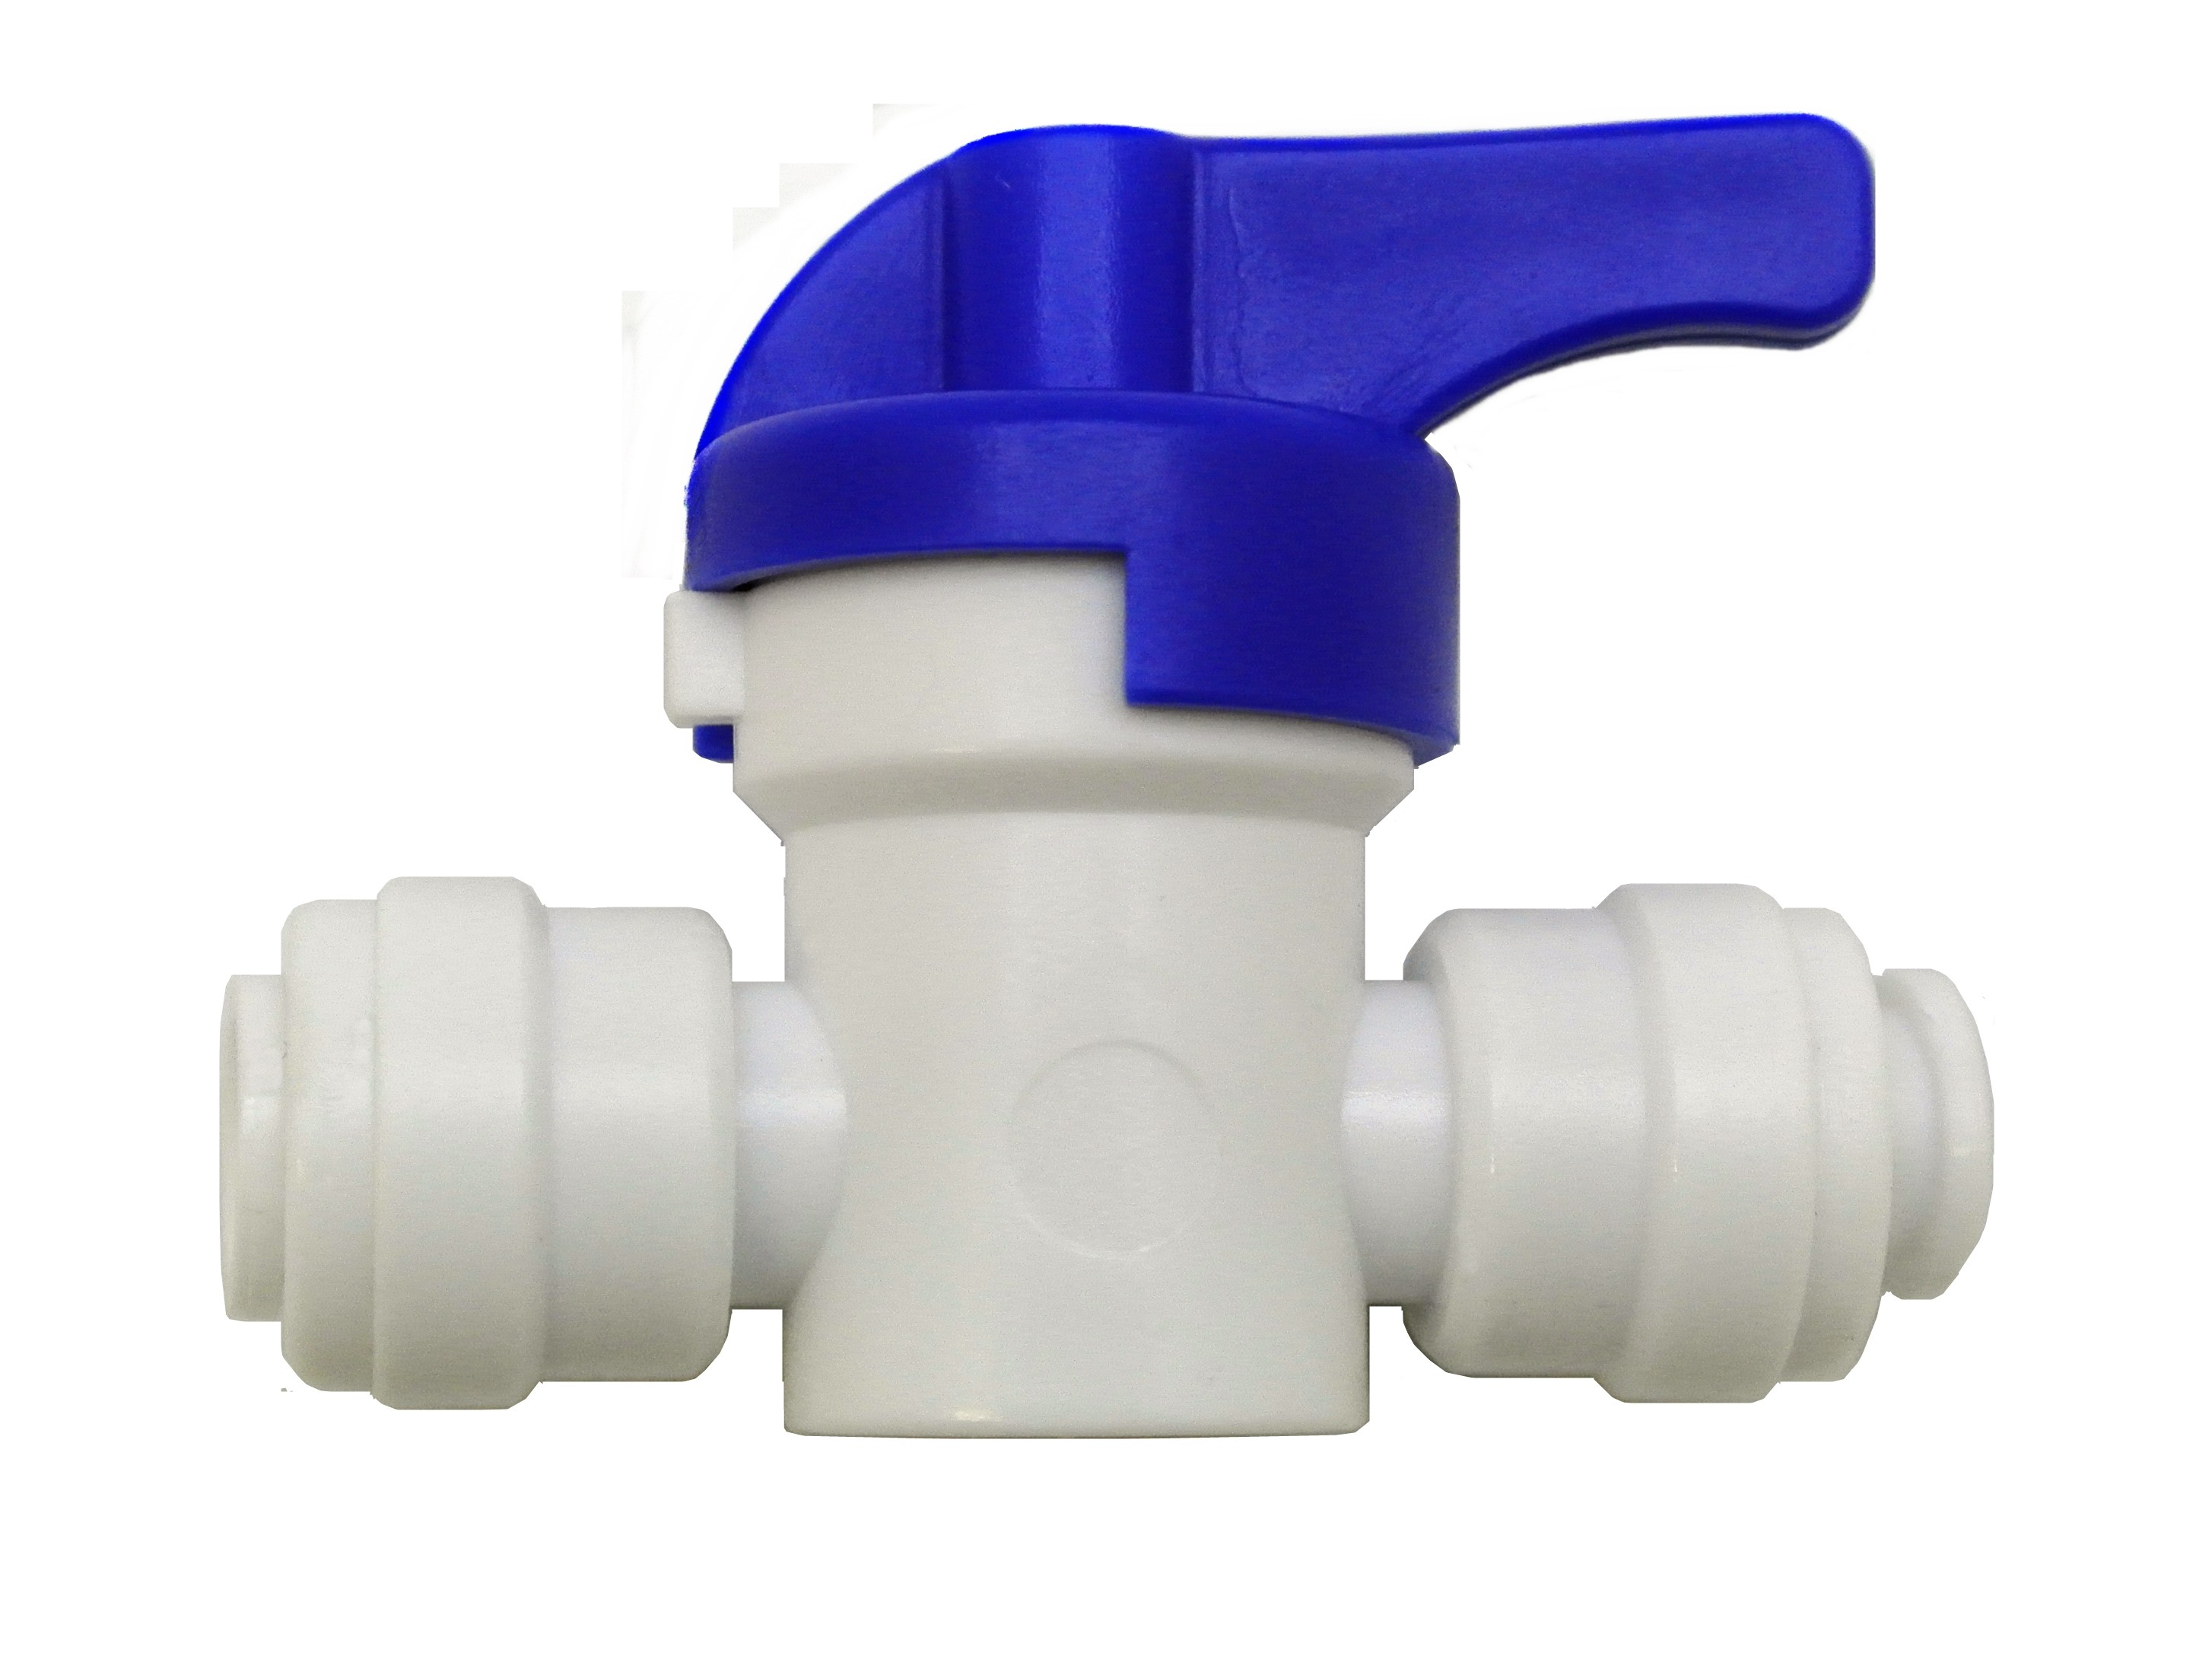 Finerfilters 1/4 to 1/4 Push Fit Shut Off Valve